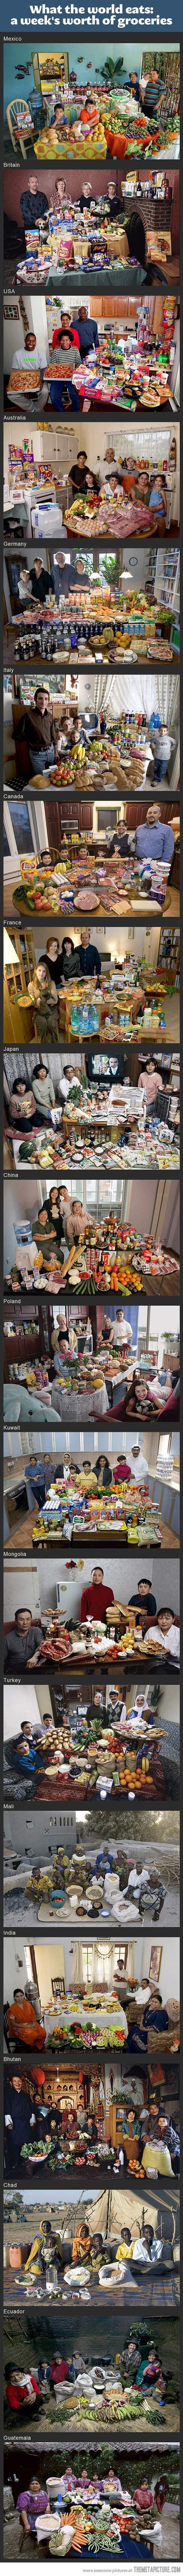 A week's worth of groceries around the world… very interesting